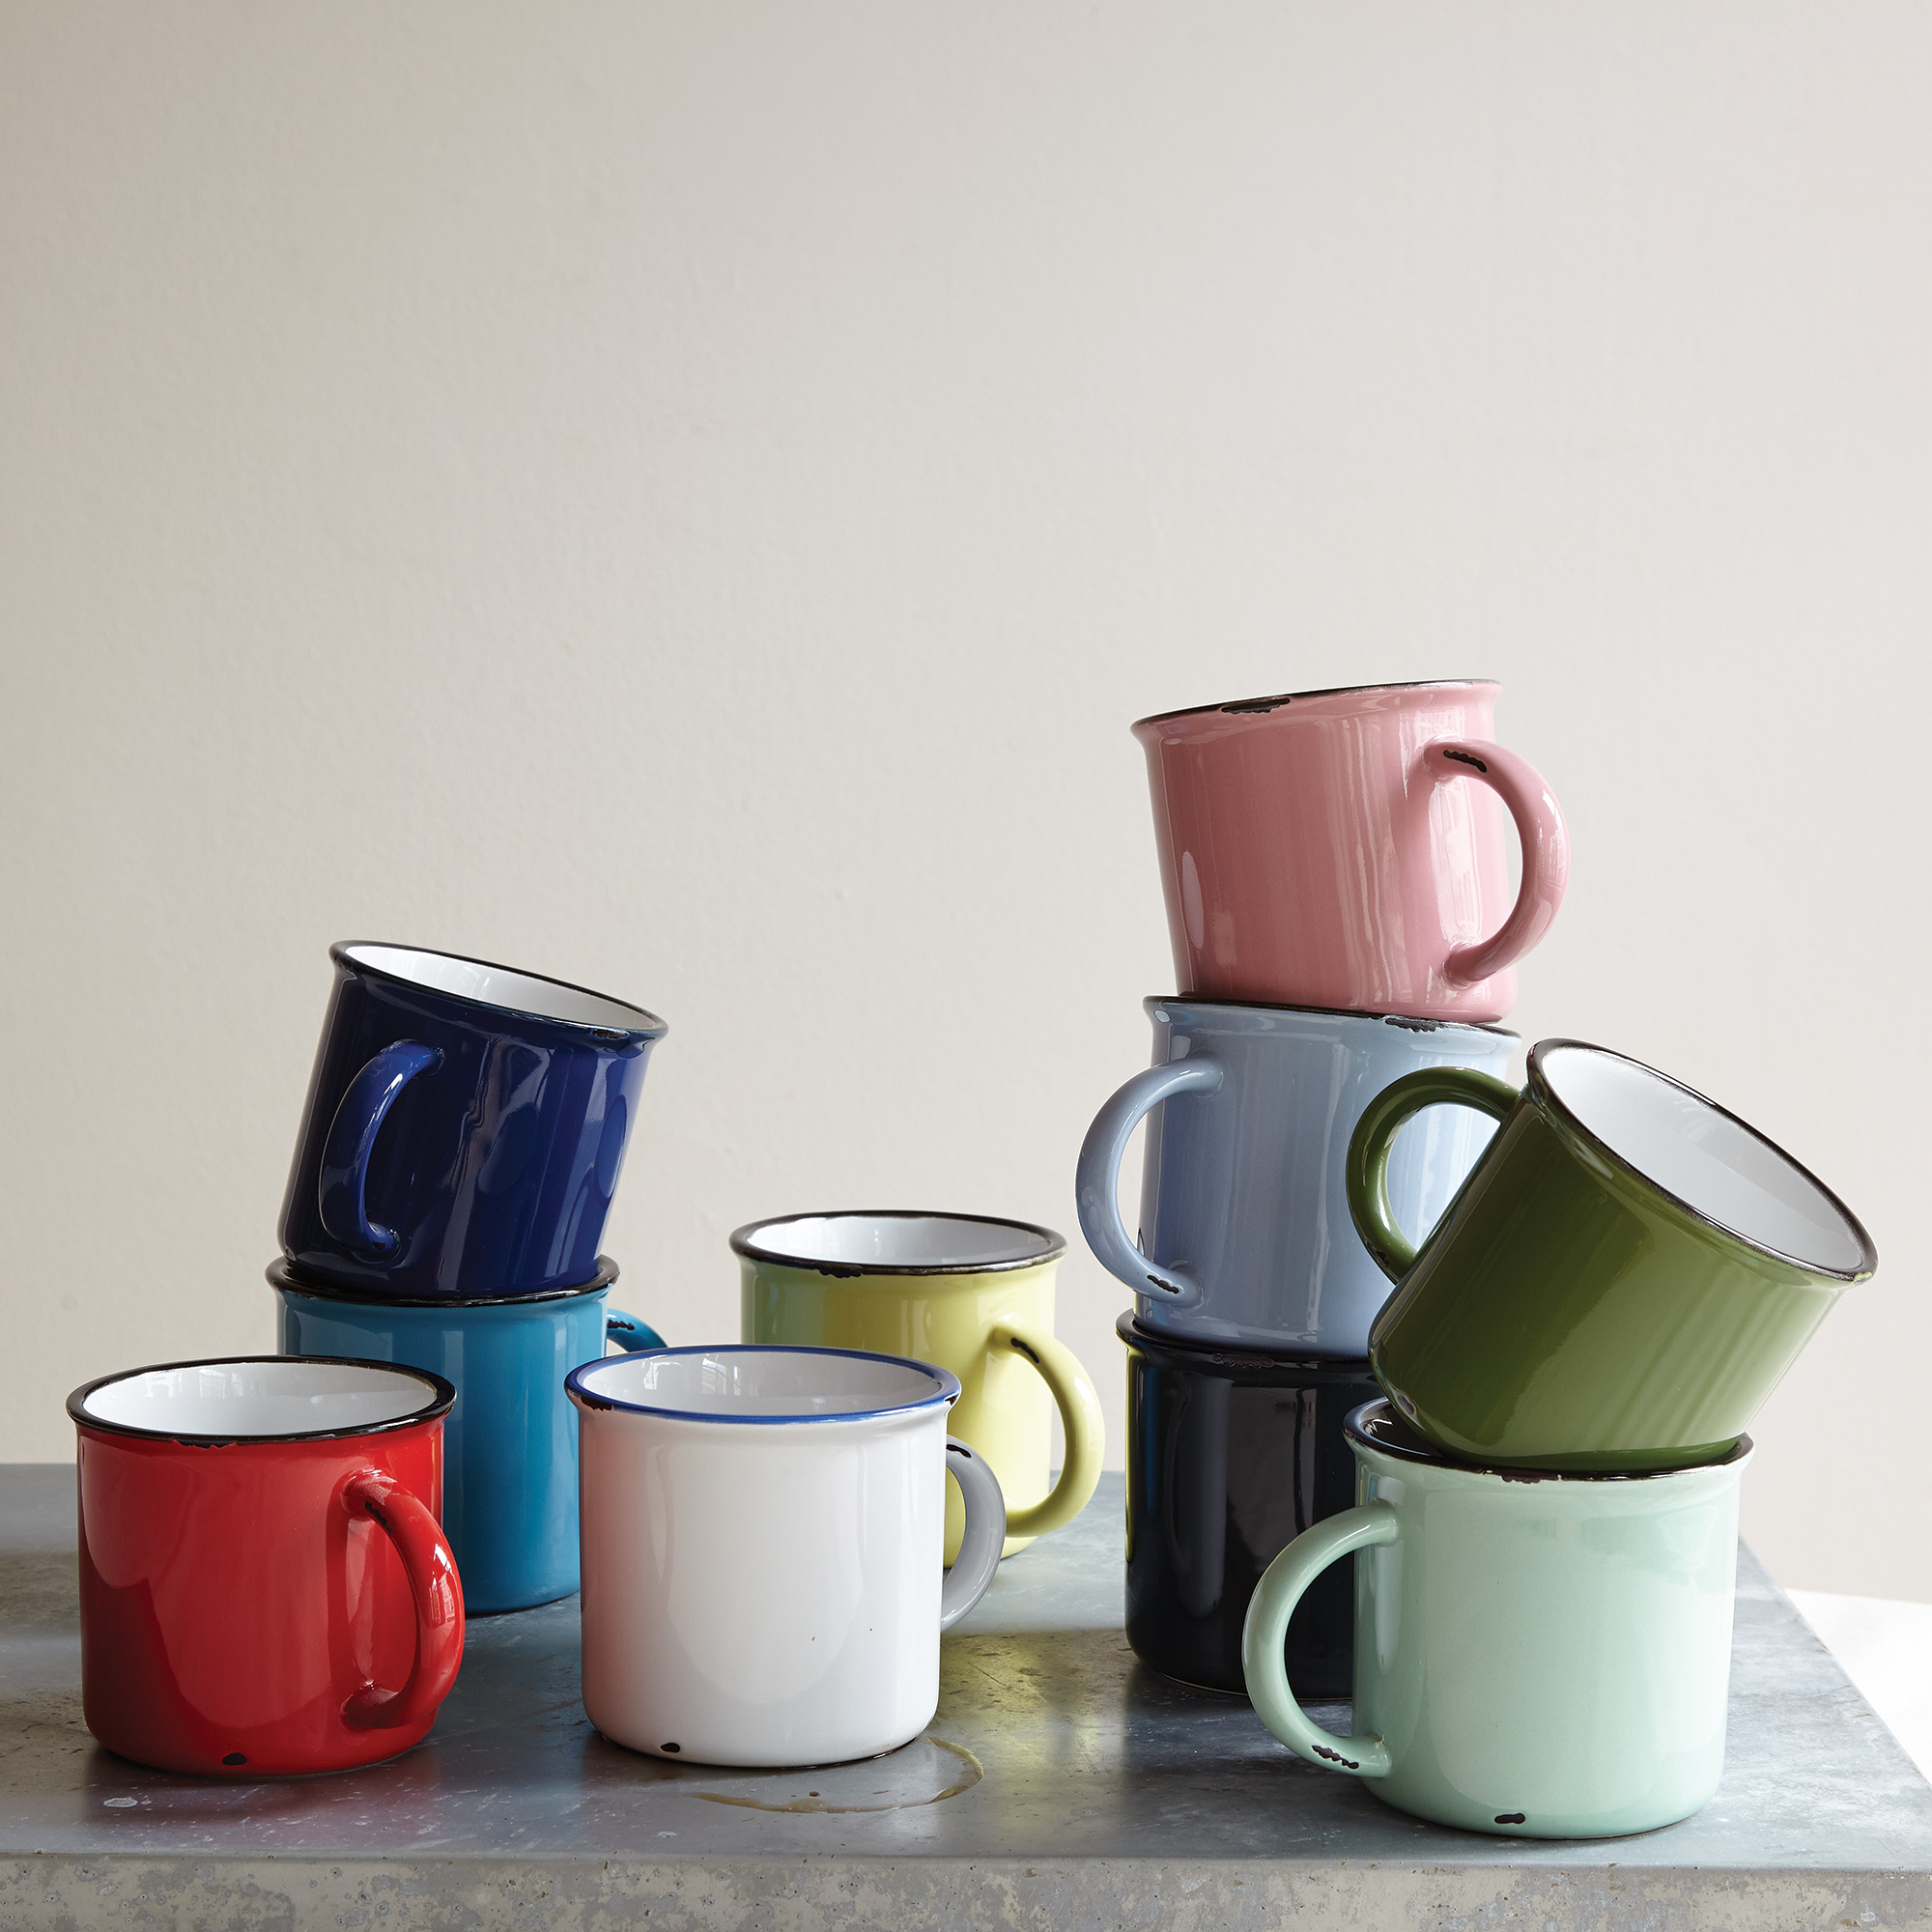 canvas-home-tinware-cups-hostess-gifts